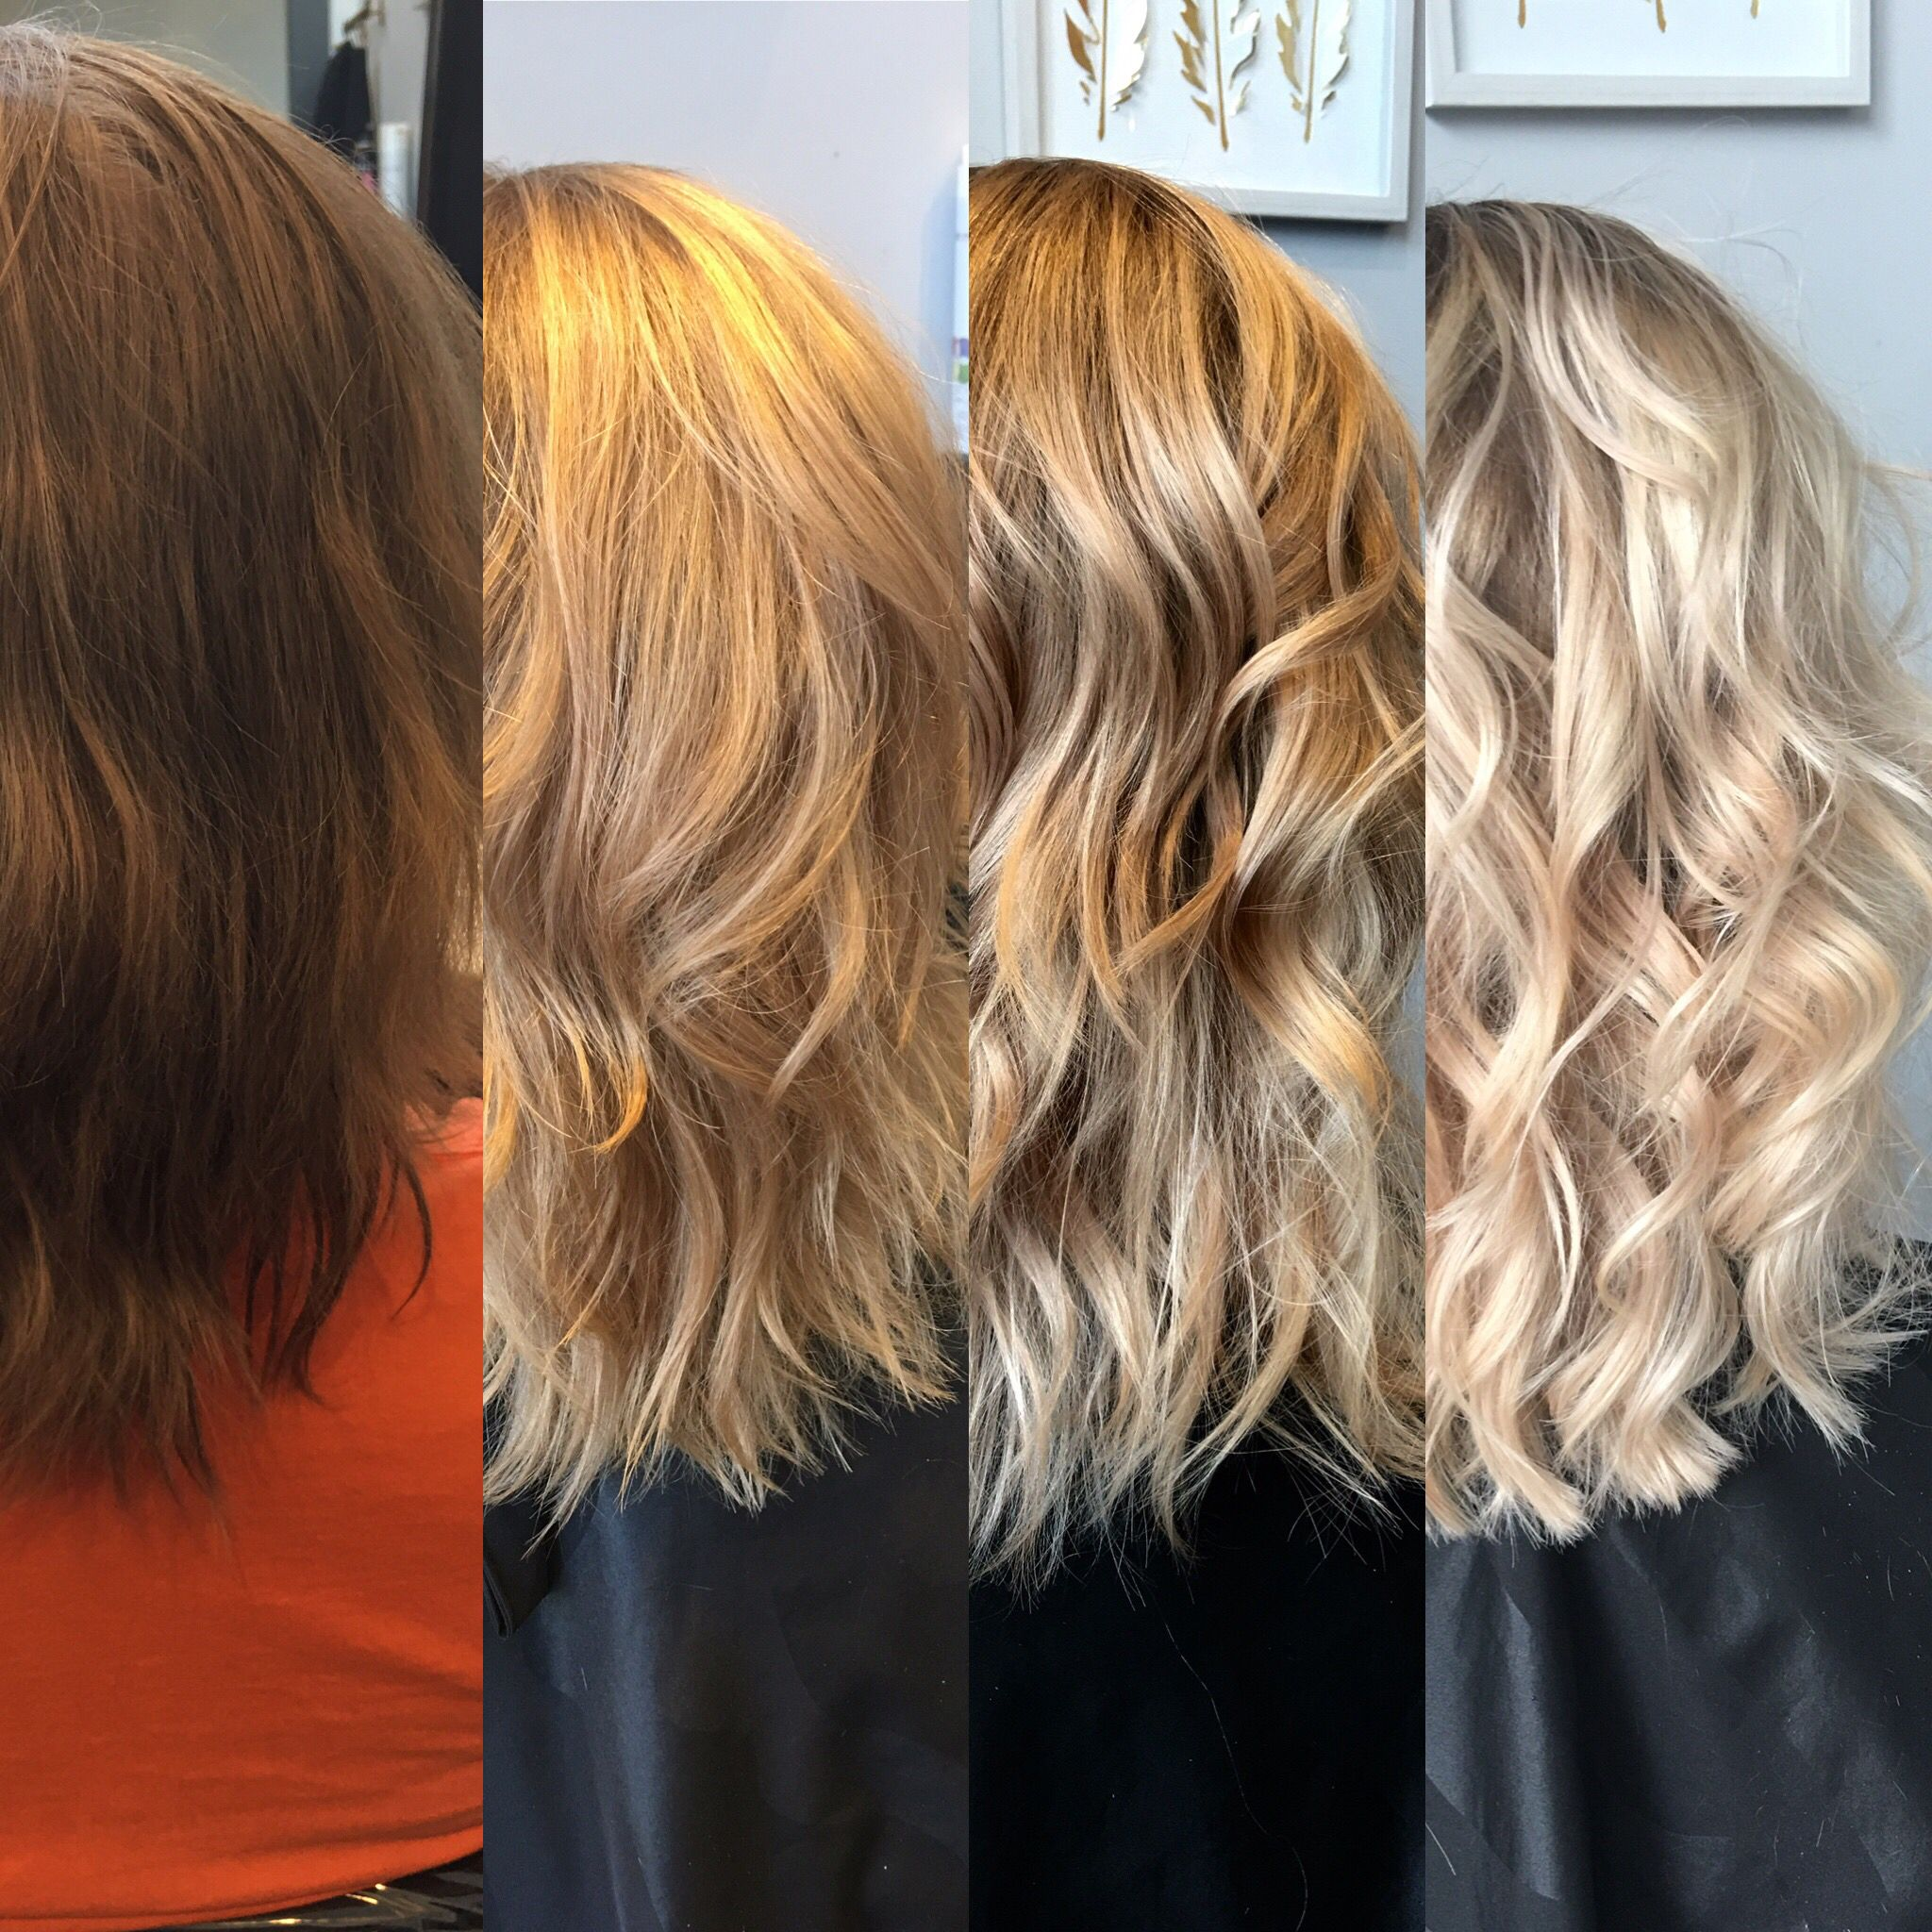 The Process Of Dark To Blonde Before And After